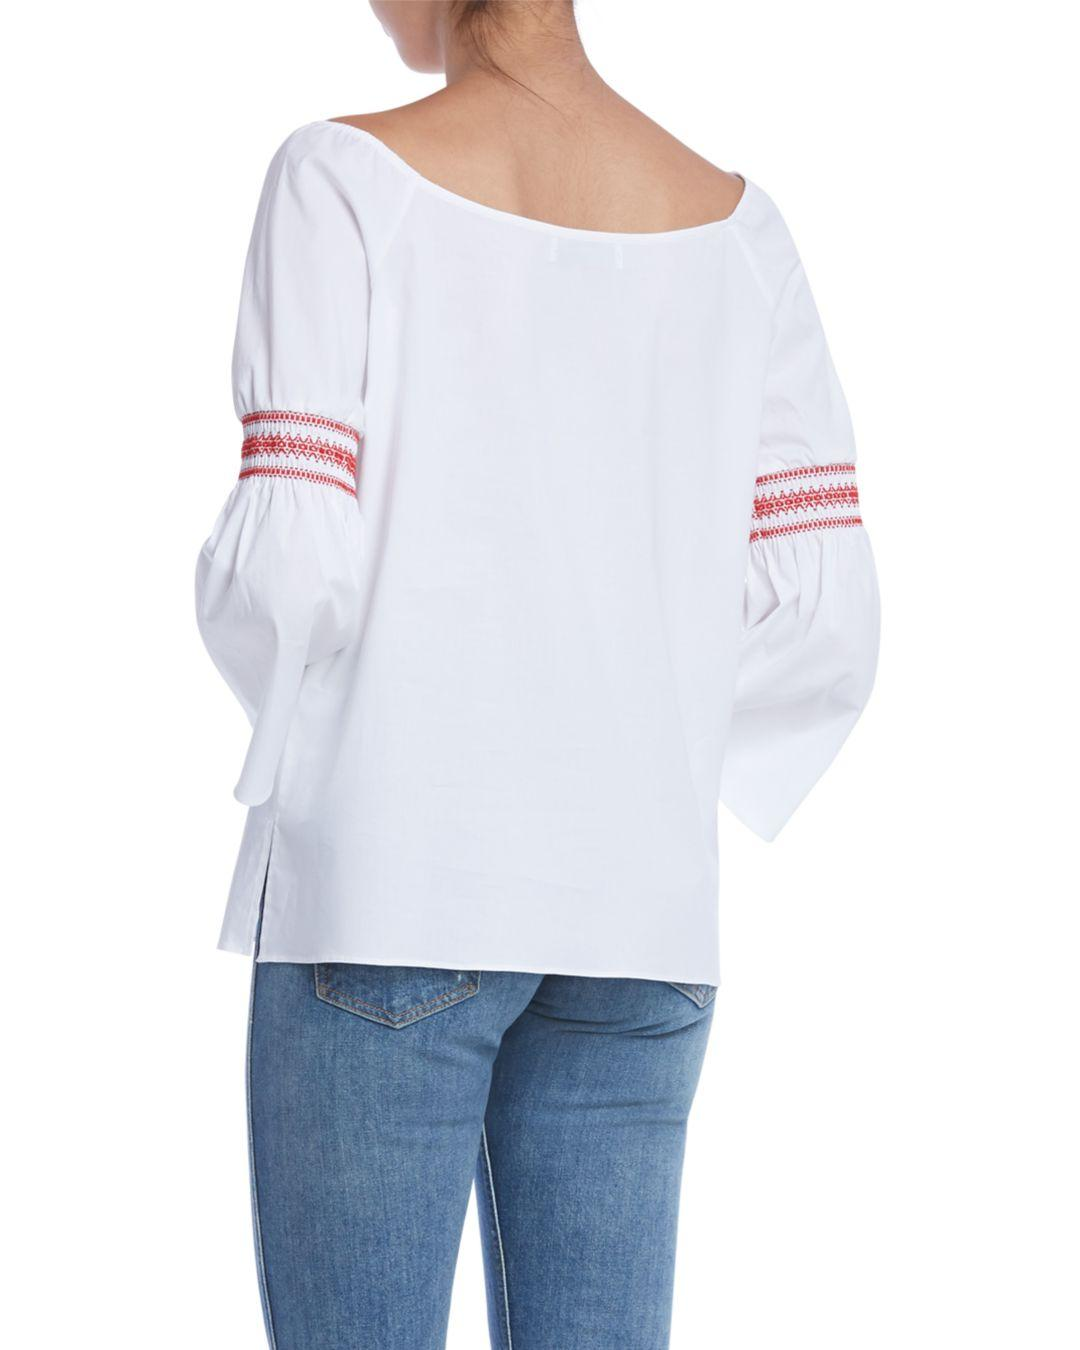 faf8529b5d1fc Lyst - Bailey 44 Enfant Terrible Bell-sleeve Top in White